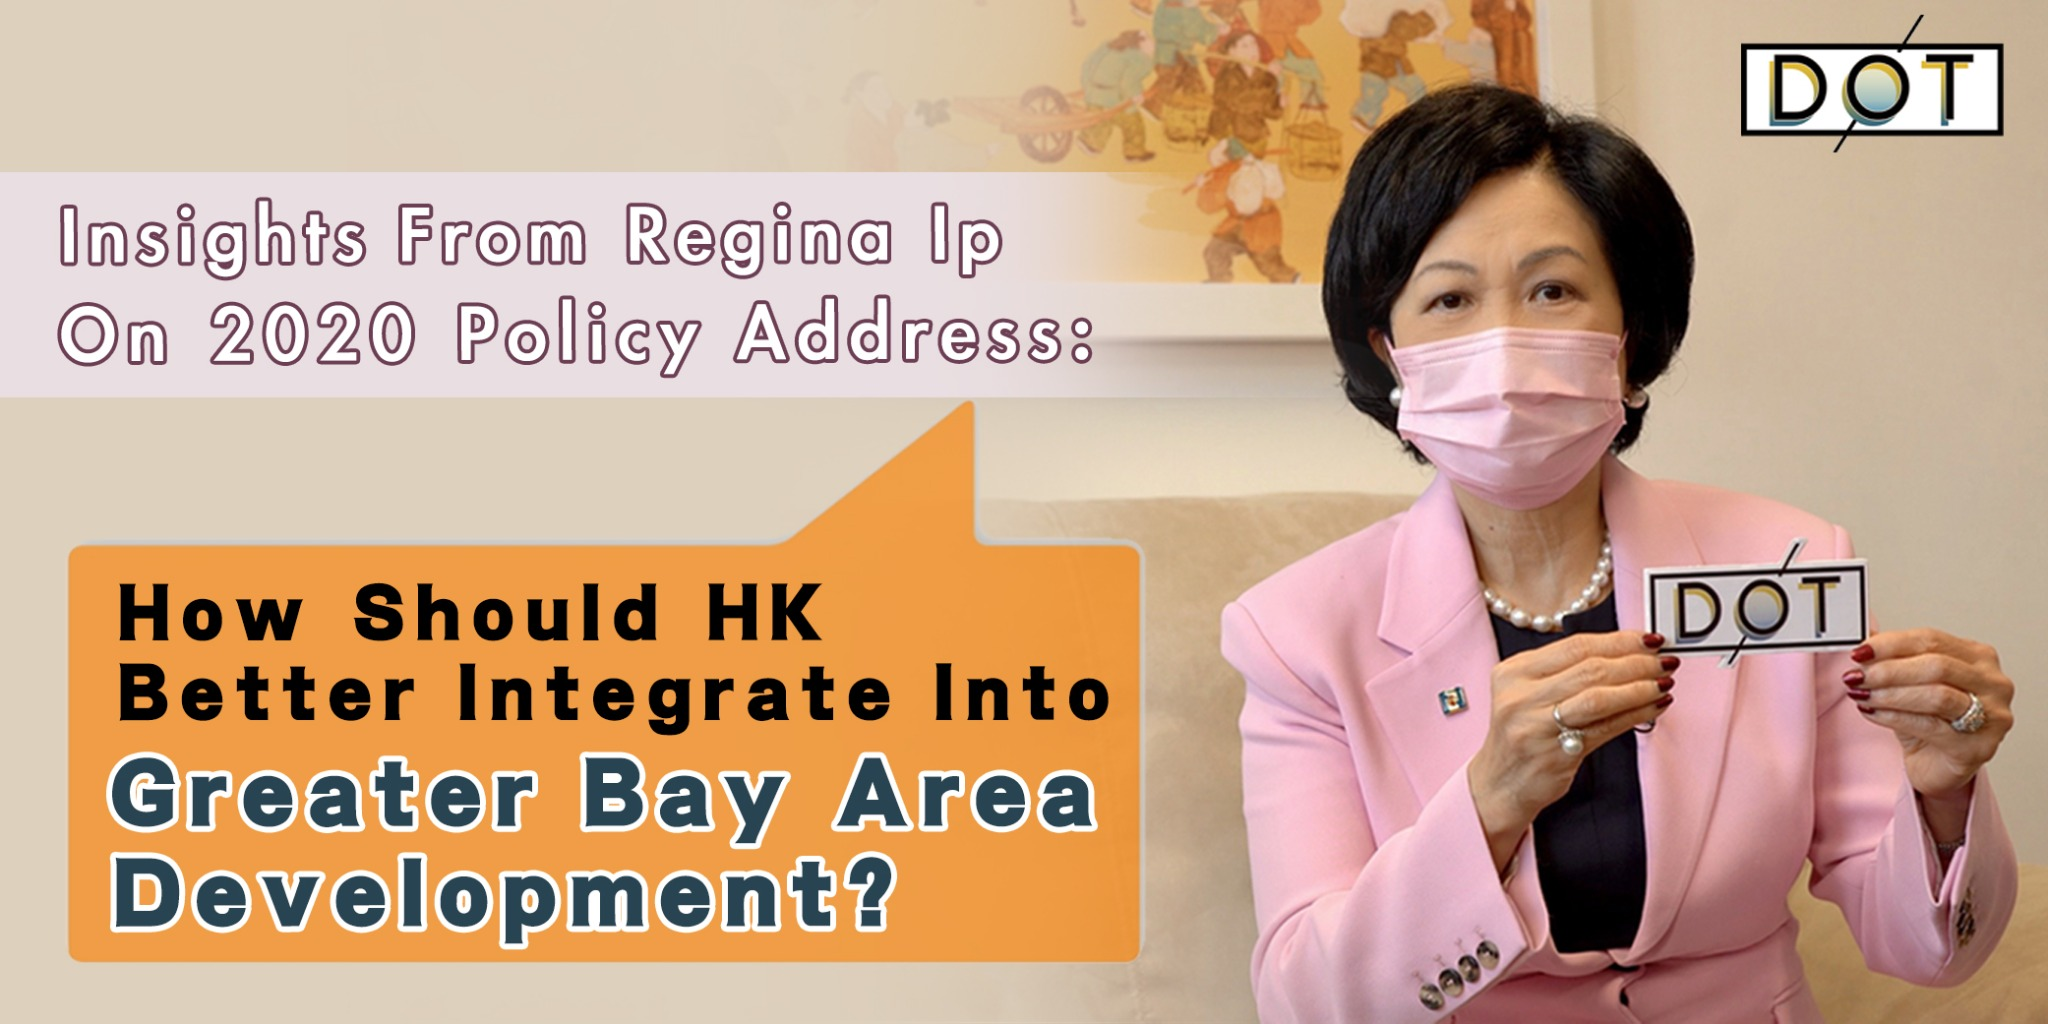 Exclusive | Insights of Regina Ip on Policy Address: How should HK overcome challenges & integrate into Greater Bay Area